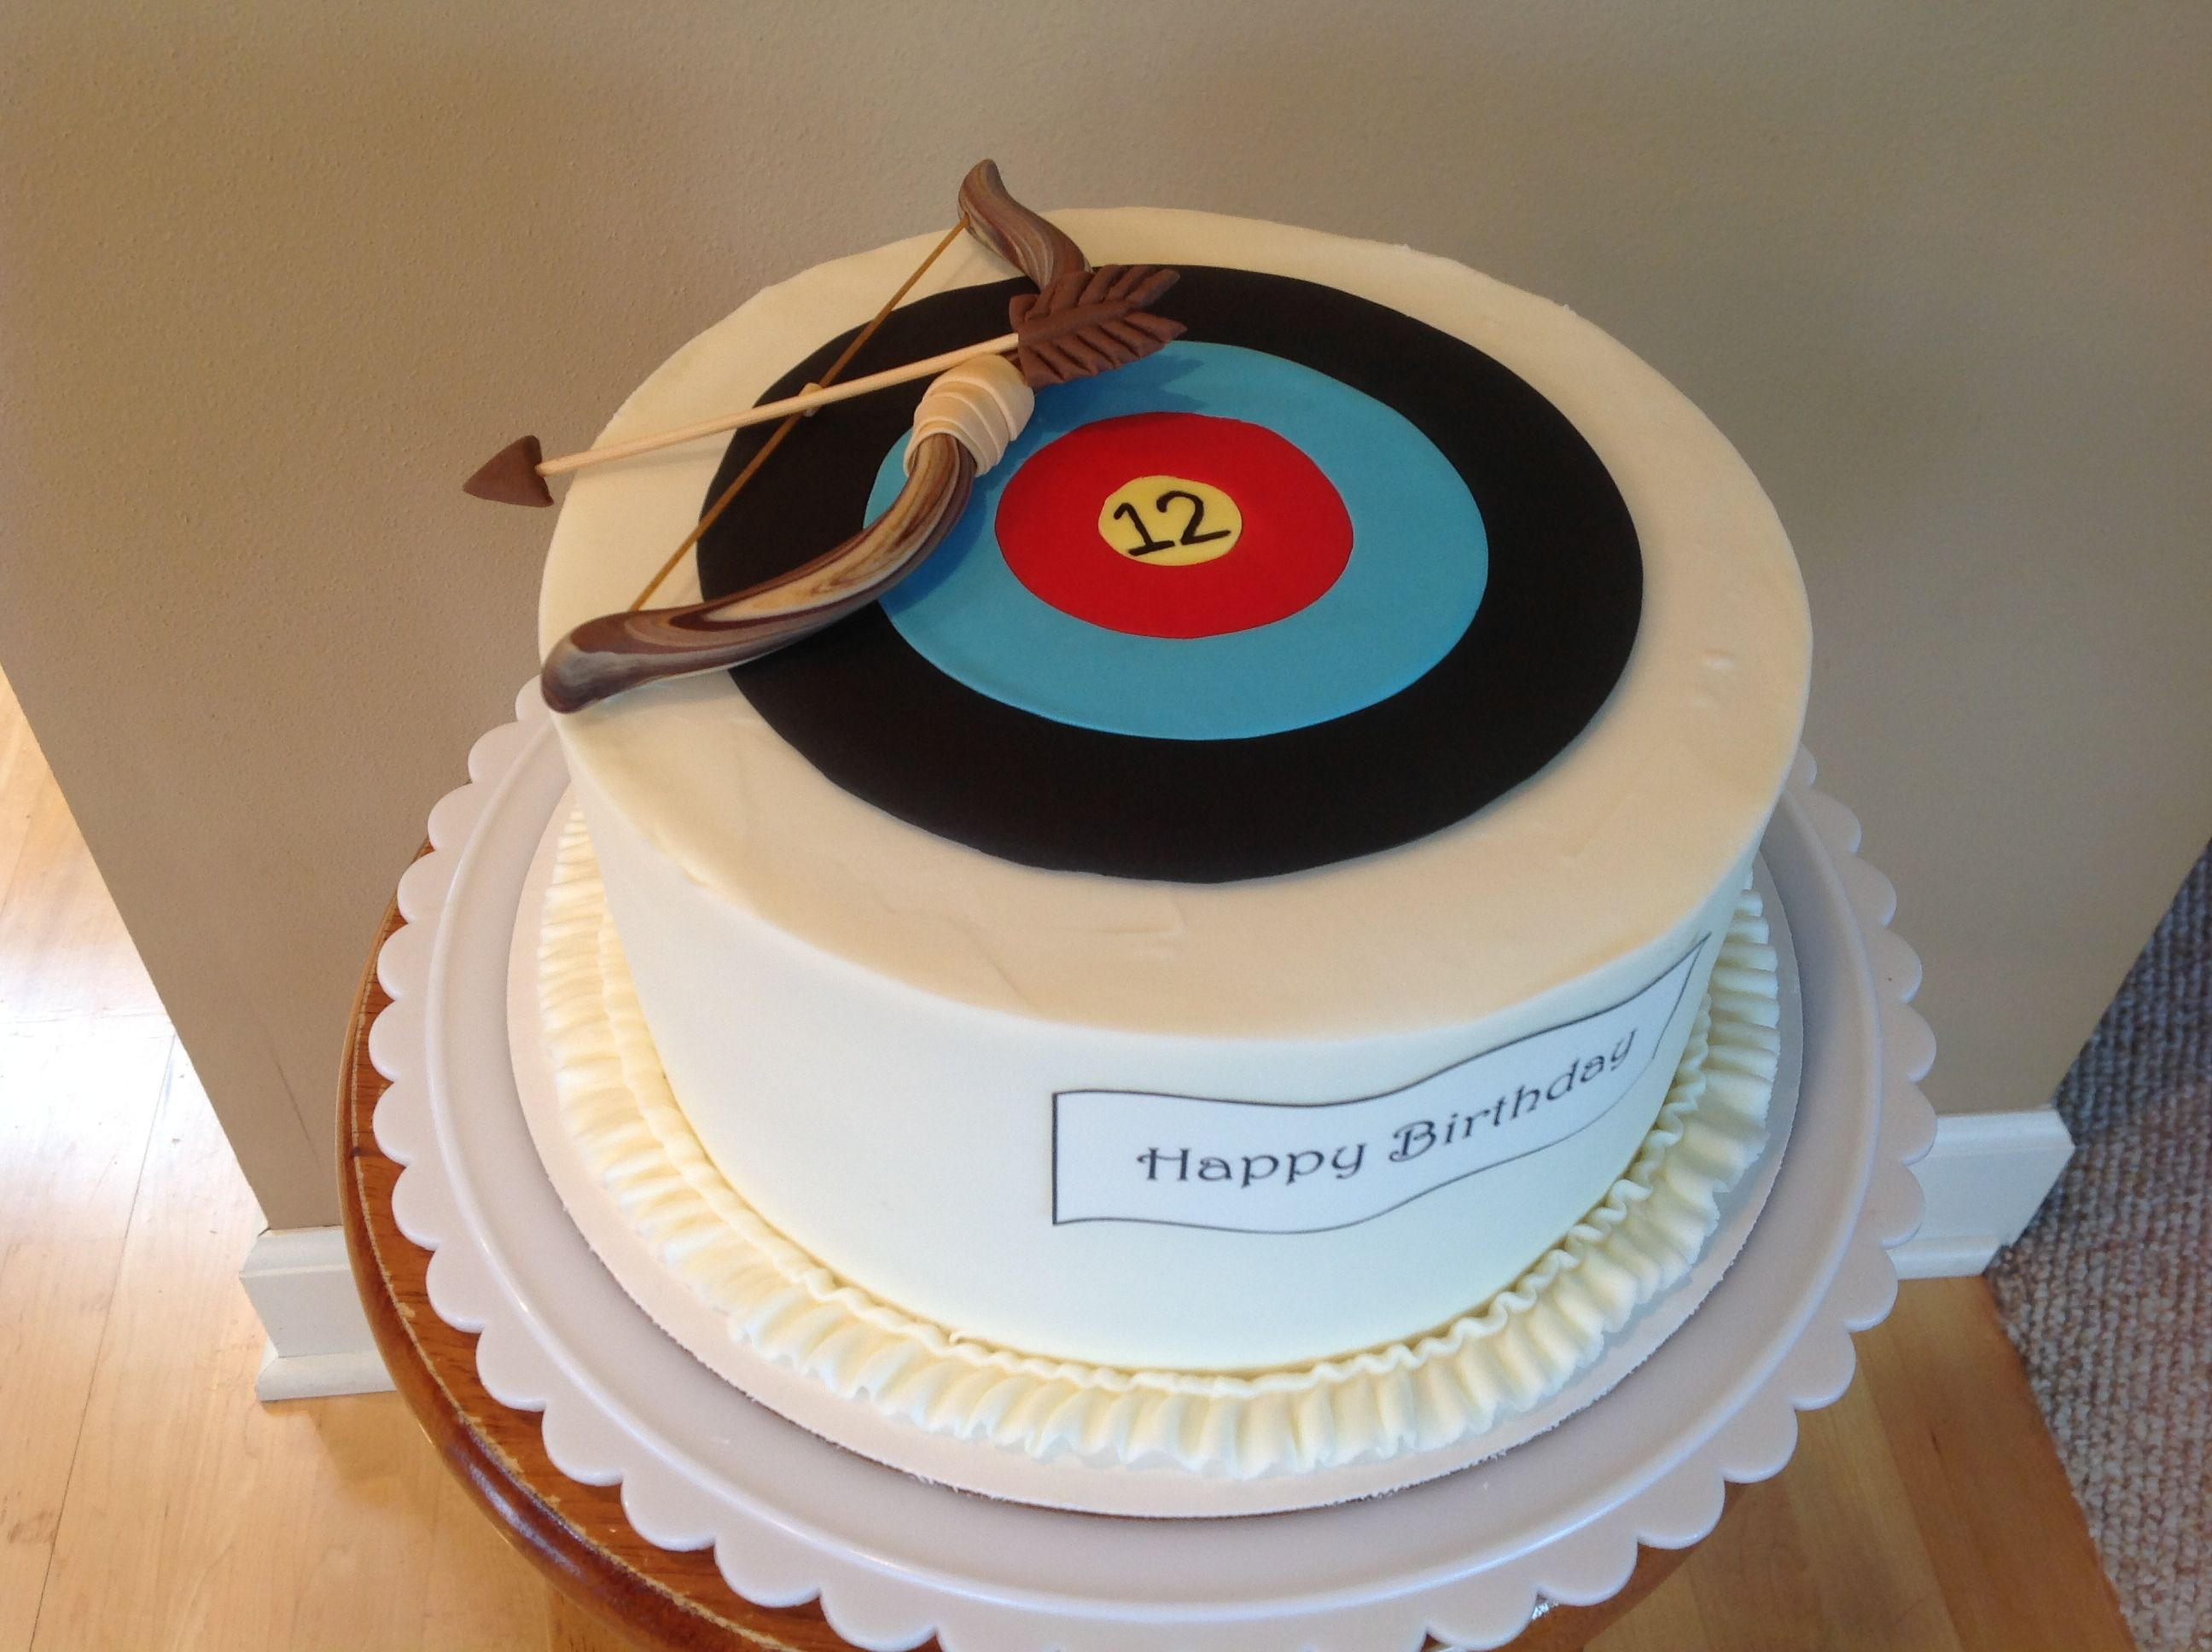 Archery cake My foods Pinterest Archery Cake and Specialty cakes